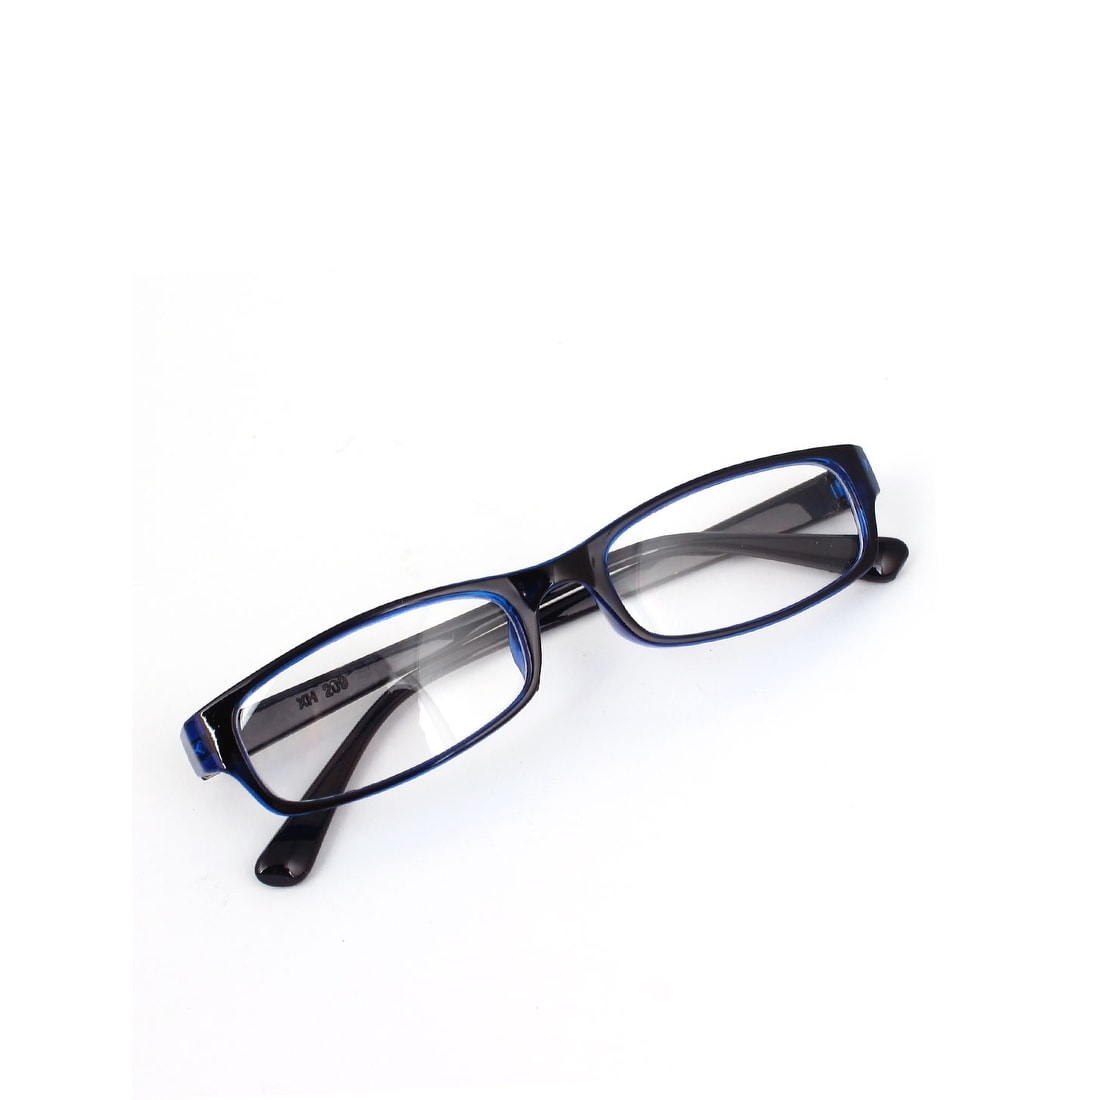 f6230ef2b63 Shop Unique Bargains Ladies Black Blue Plastic Full Frame Clear Lens Plain  Glasses Eyeglasses - Free Shipping On Orders Over  45 - Overstock - 18340147